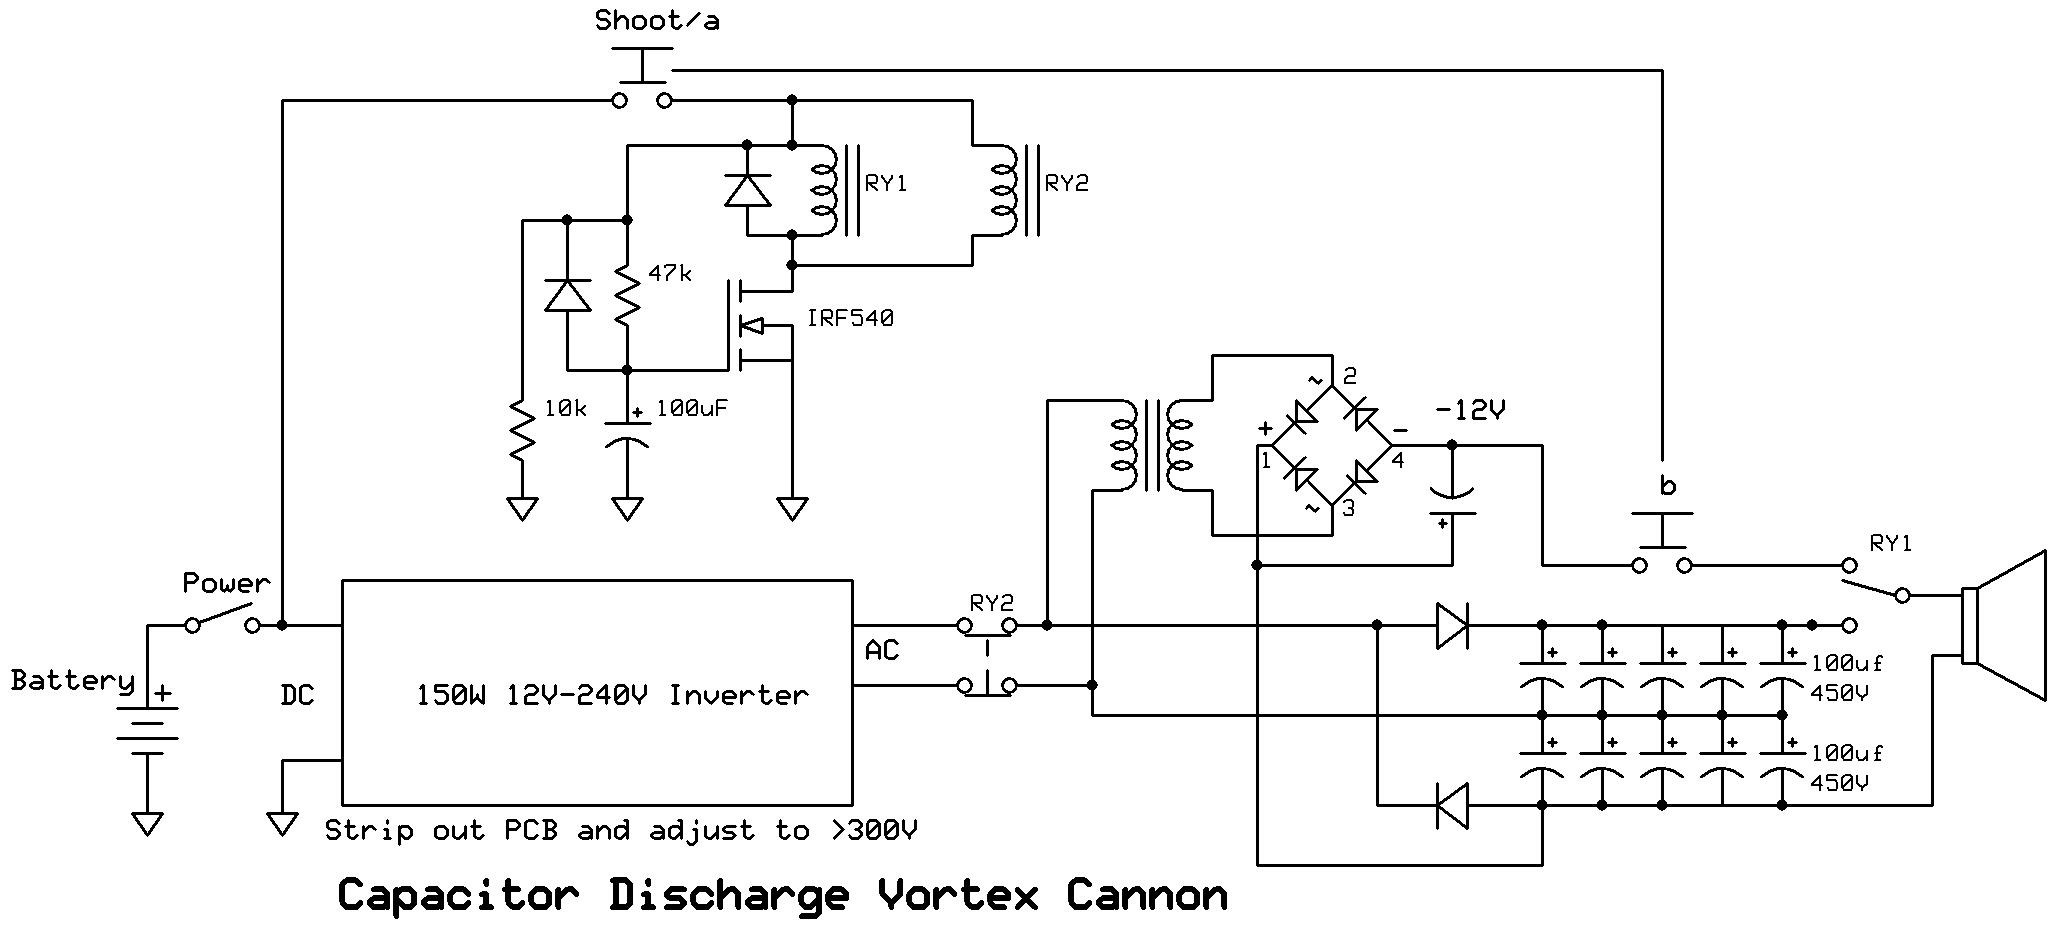 Vortex Cannon Using Capacitor Discharge Dc Voltage Doubler Circuit New Down And Dirty Working For 600v Delay Hold 12v Before Discharging Capacitors Relay Isolating Inverter Eliminates The Need